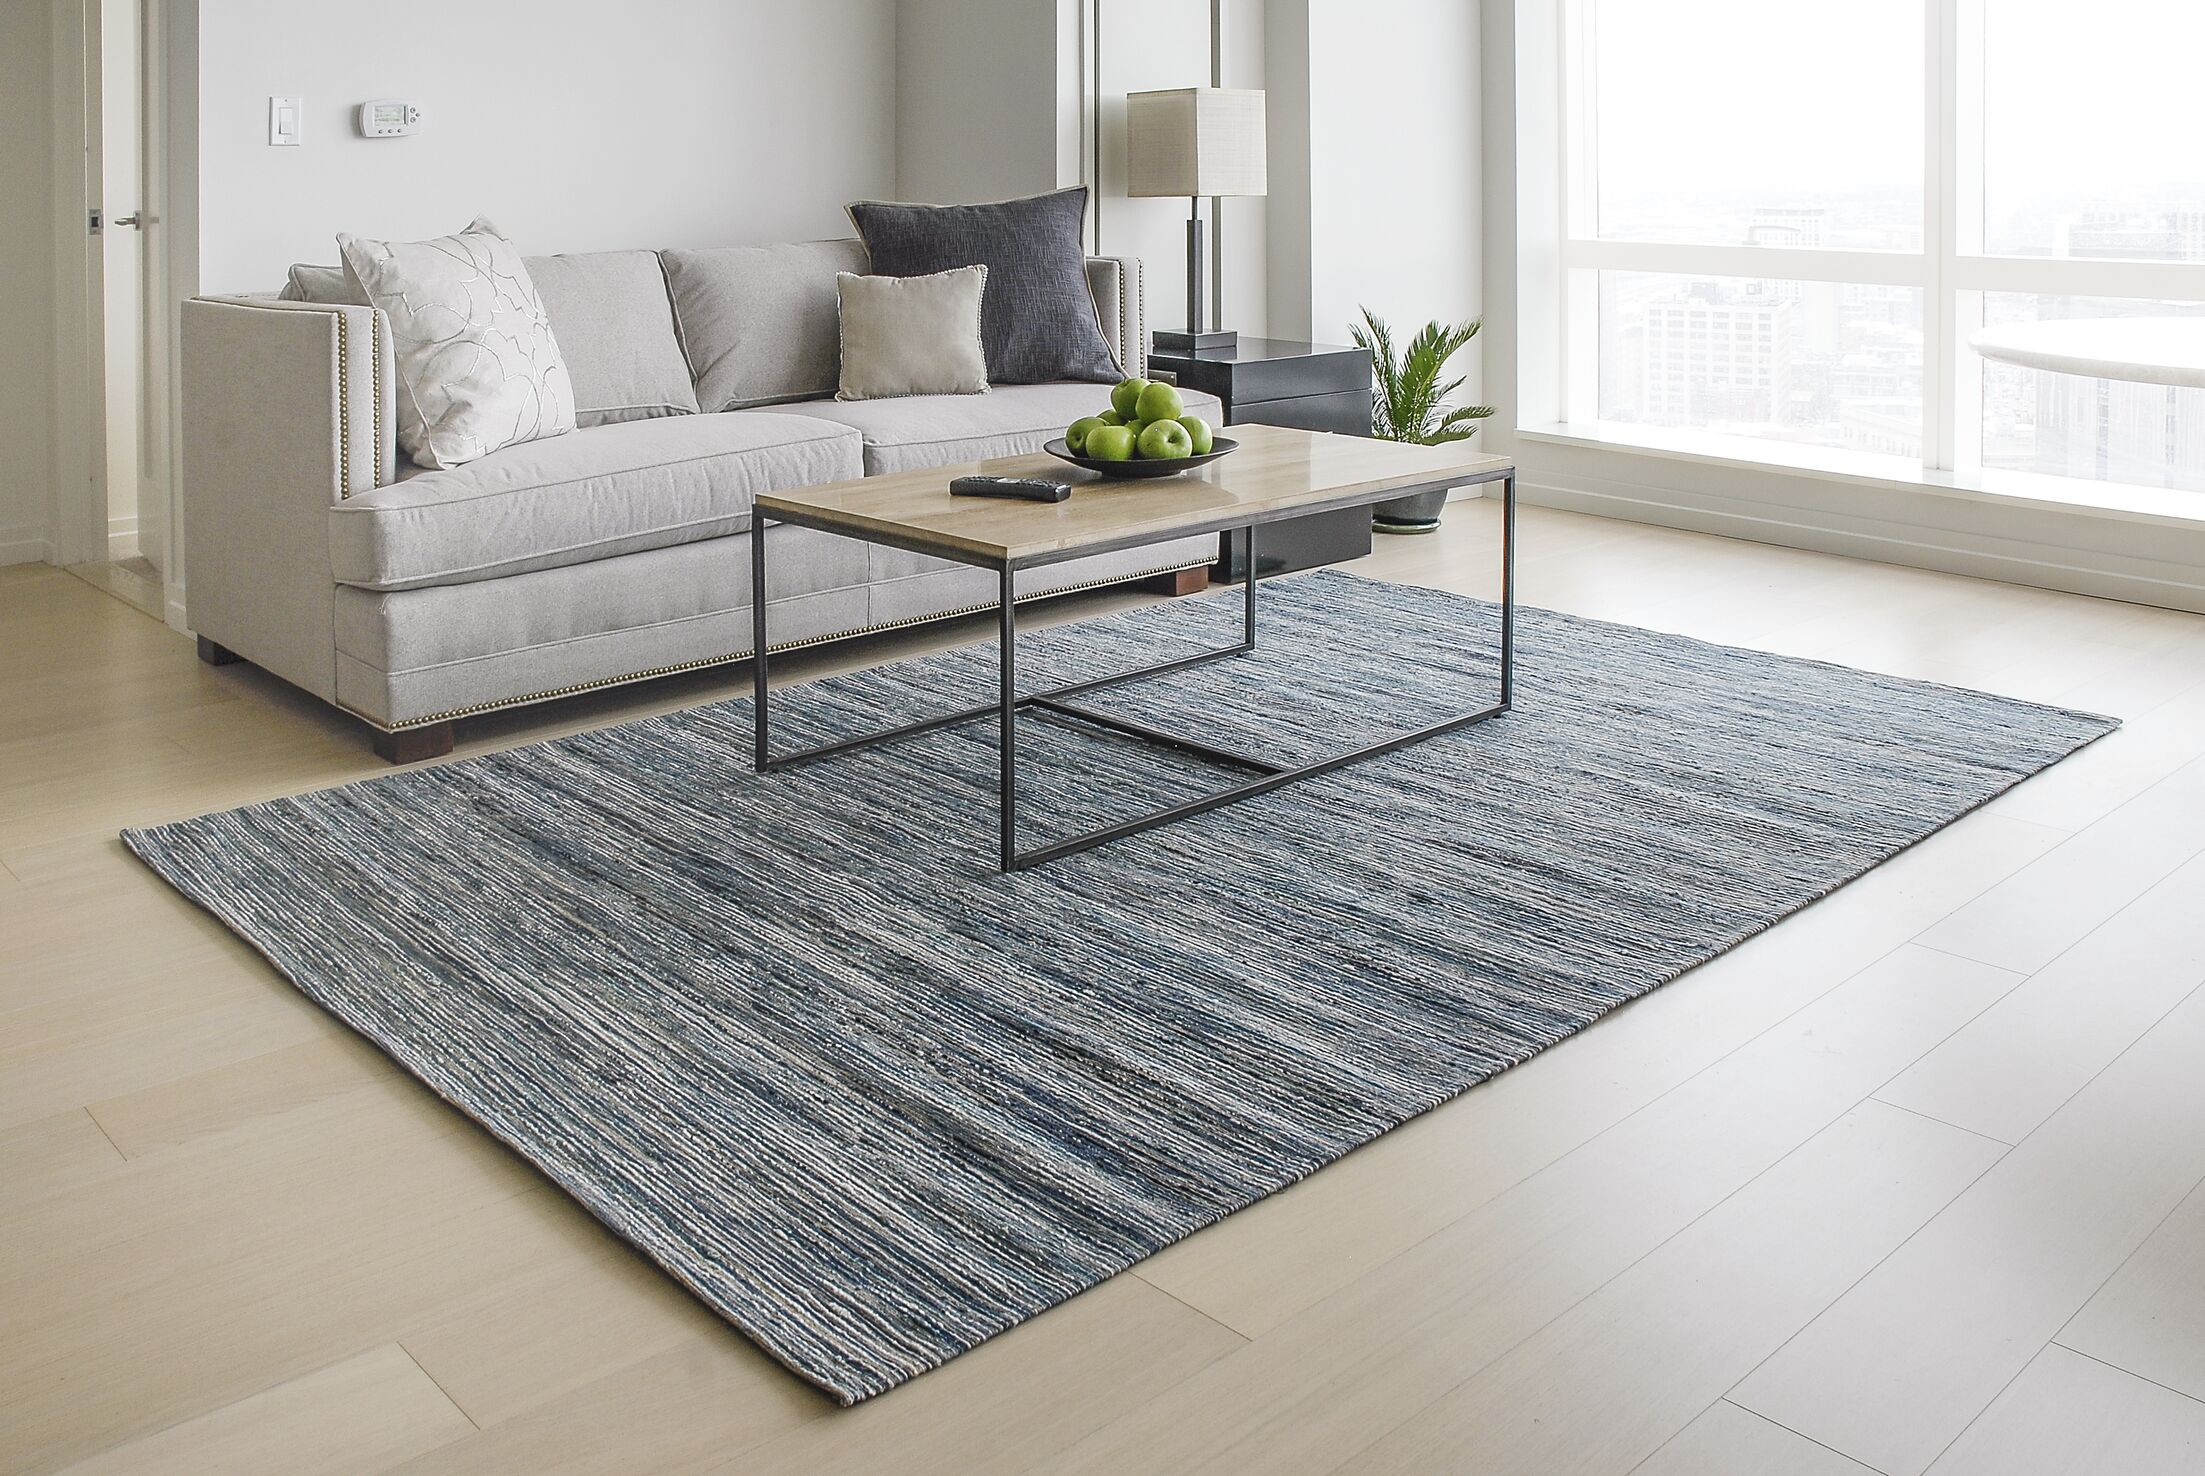 Sari Silk and Jute Hand Woven Gray/Light Blue Area Rug Rug Size: Rectangle 6' x 9'